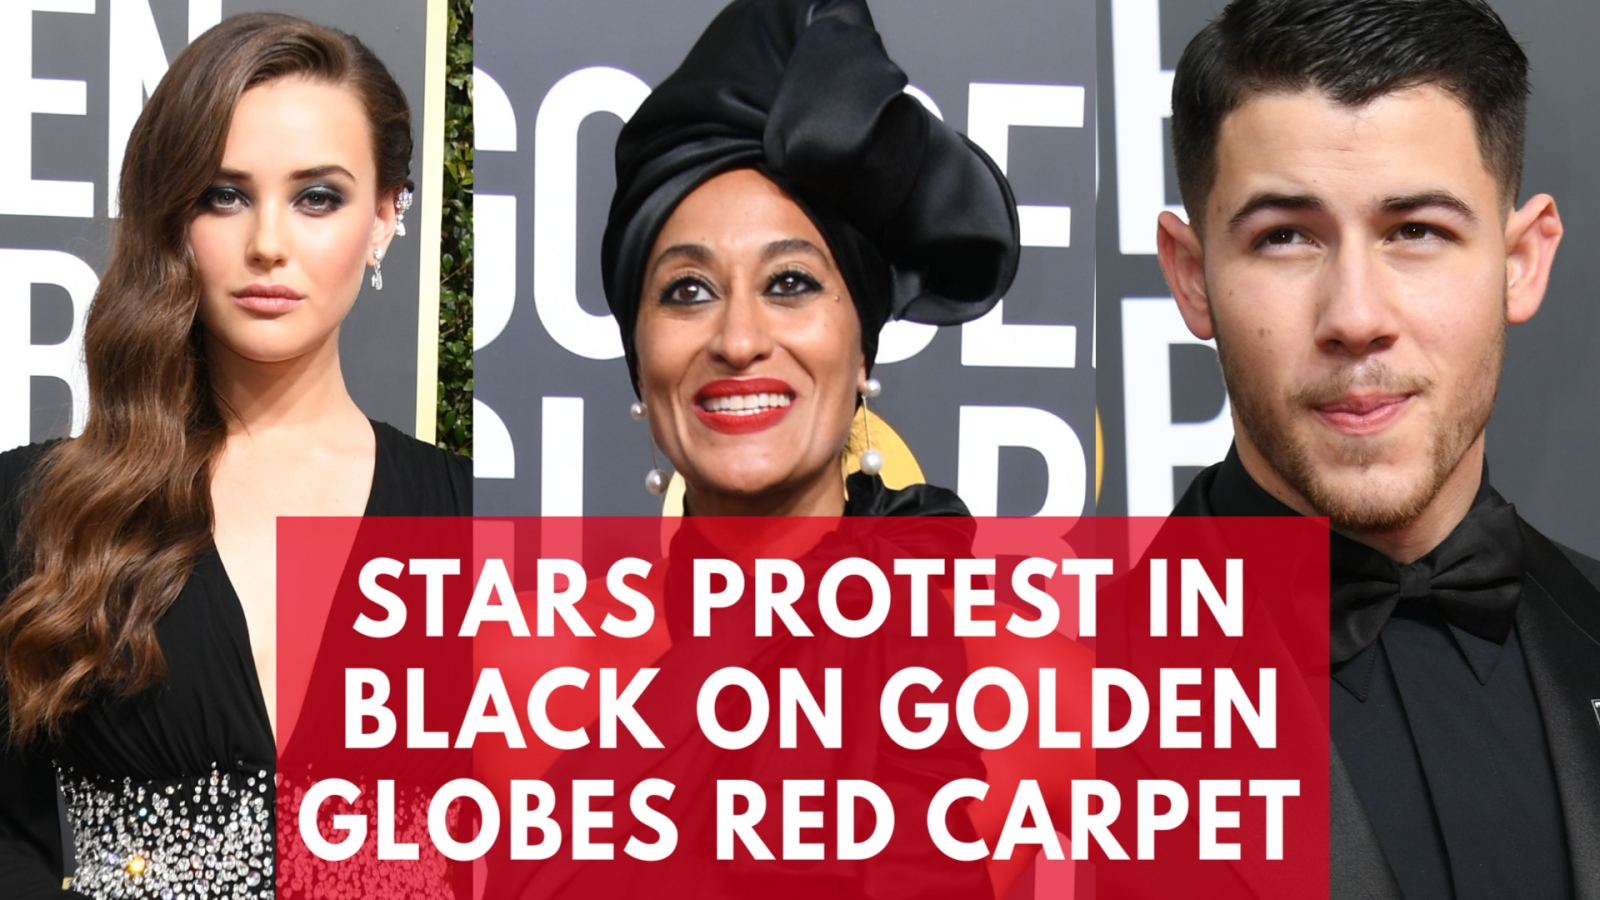 2018-golden-globes-red-carpet-stars-wear-black-in-times-up-protest-against-hollywood-sexual-harassment